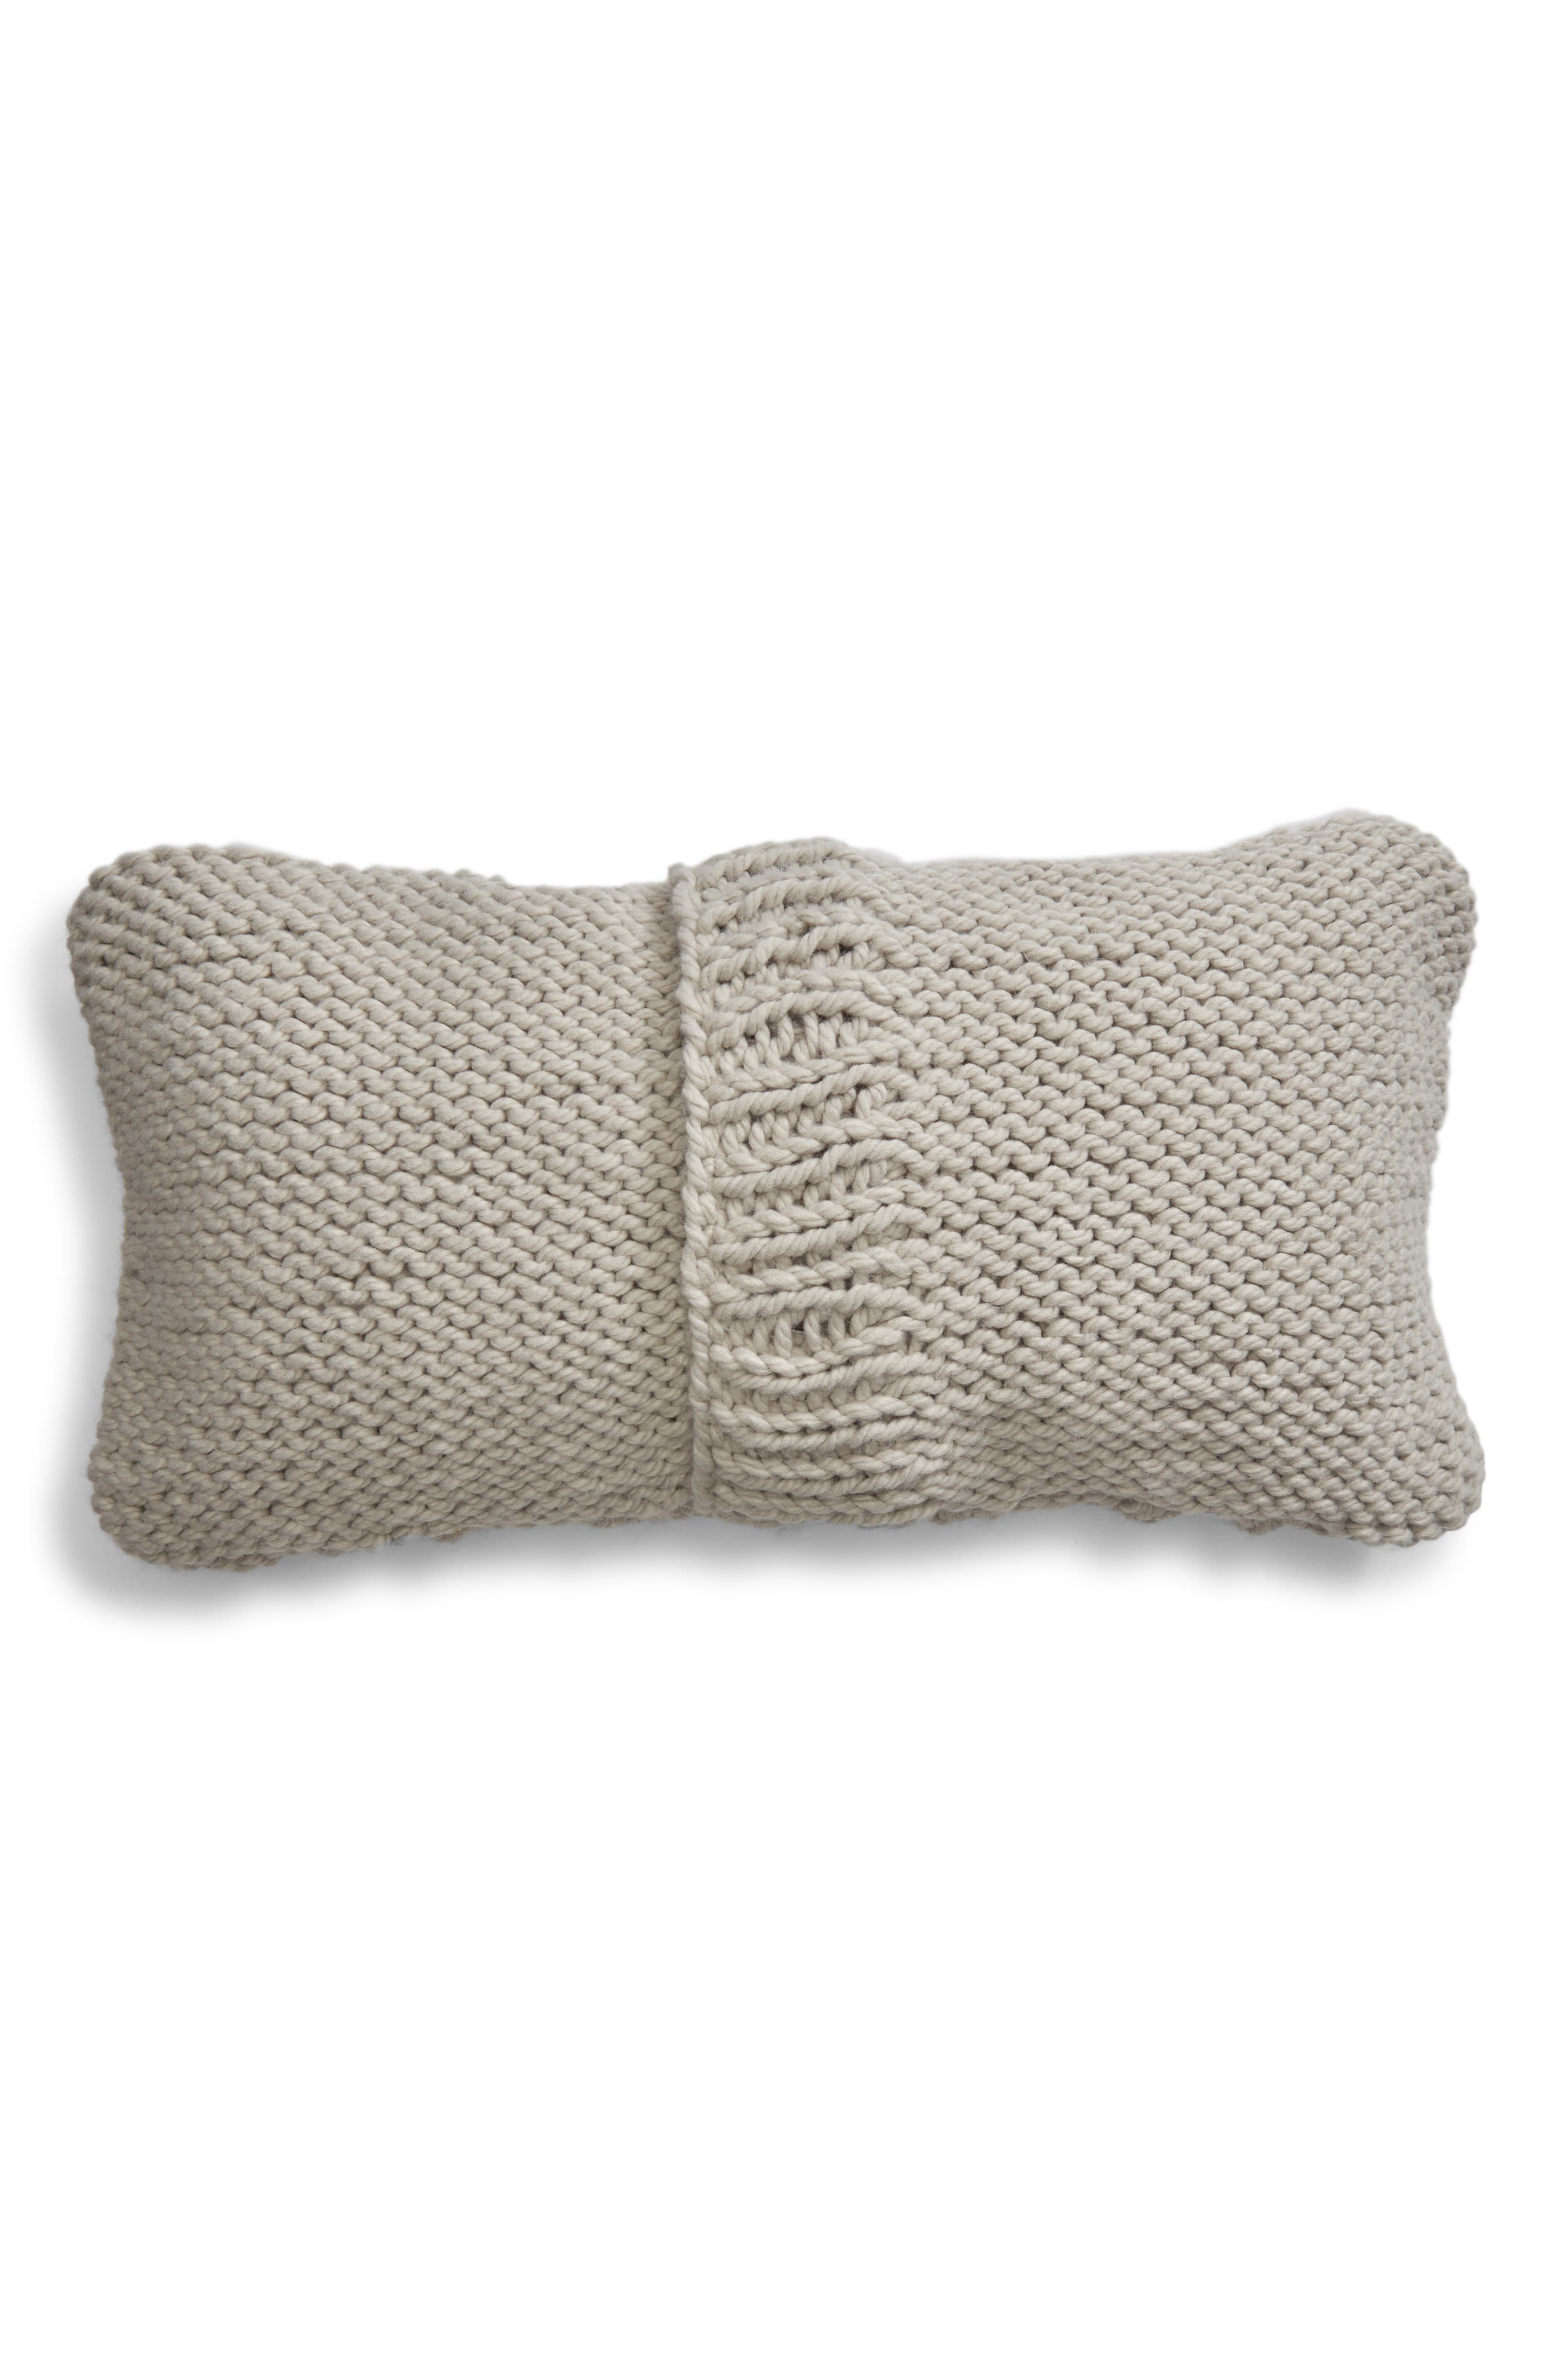 Chunky Cable Knit Accent Pillow,                             Alternate thumbnail 2, color,                             GREY VAPOR